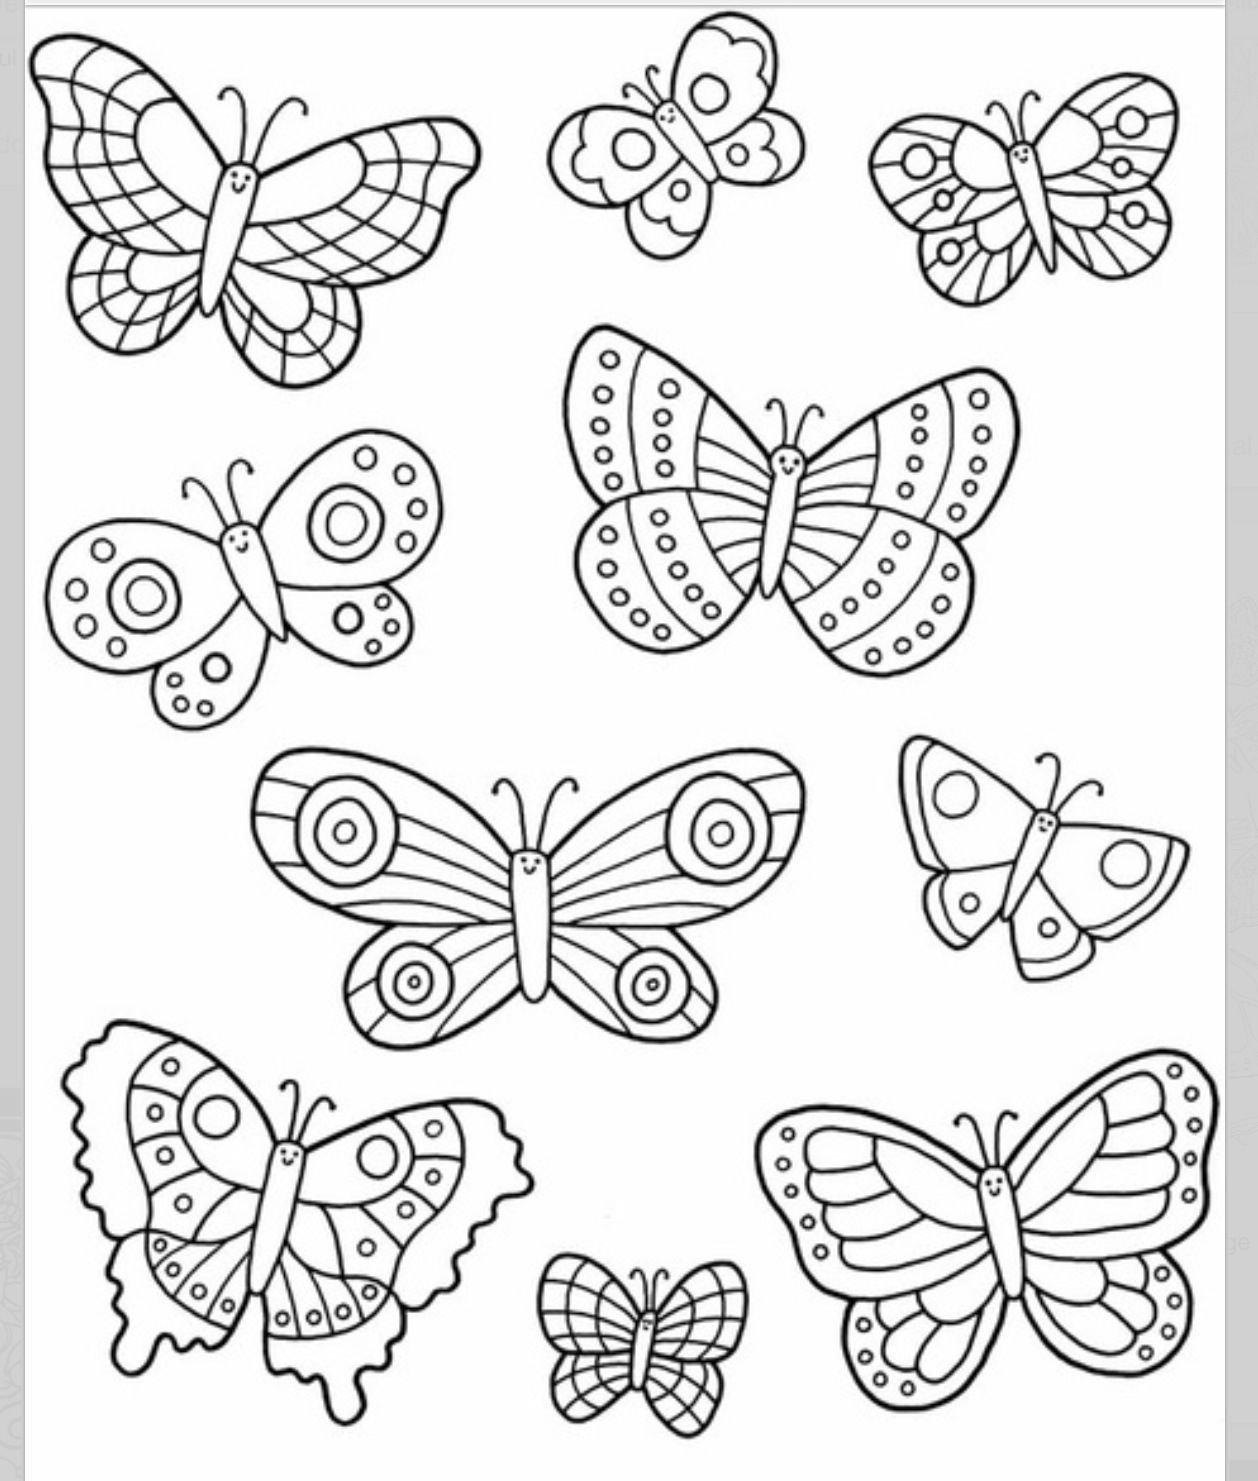 printable butterfly coloring sheets printable butterfly coloring pages for kids cool2bkids coloring sheets butterfly printable